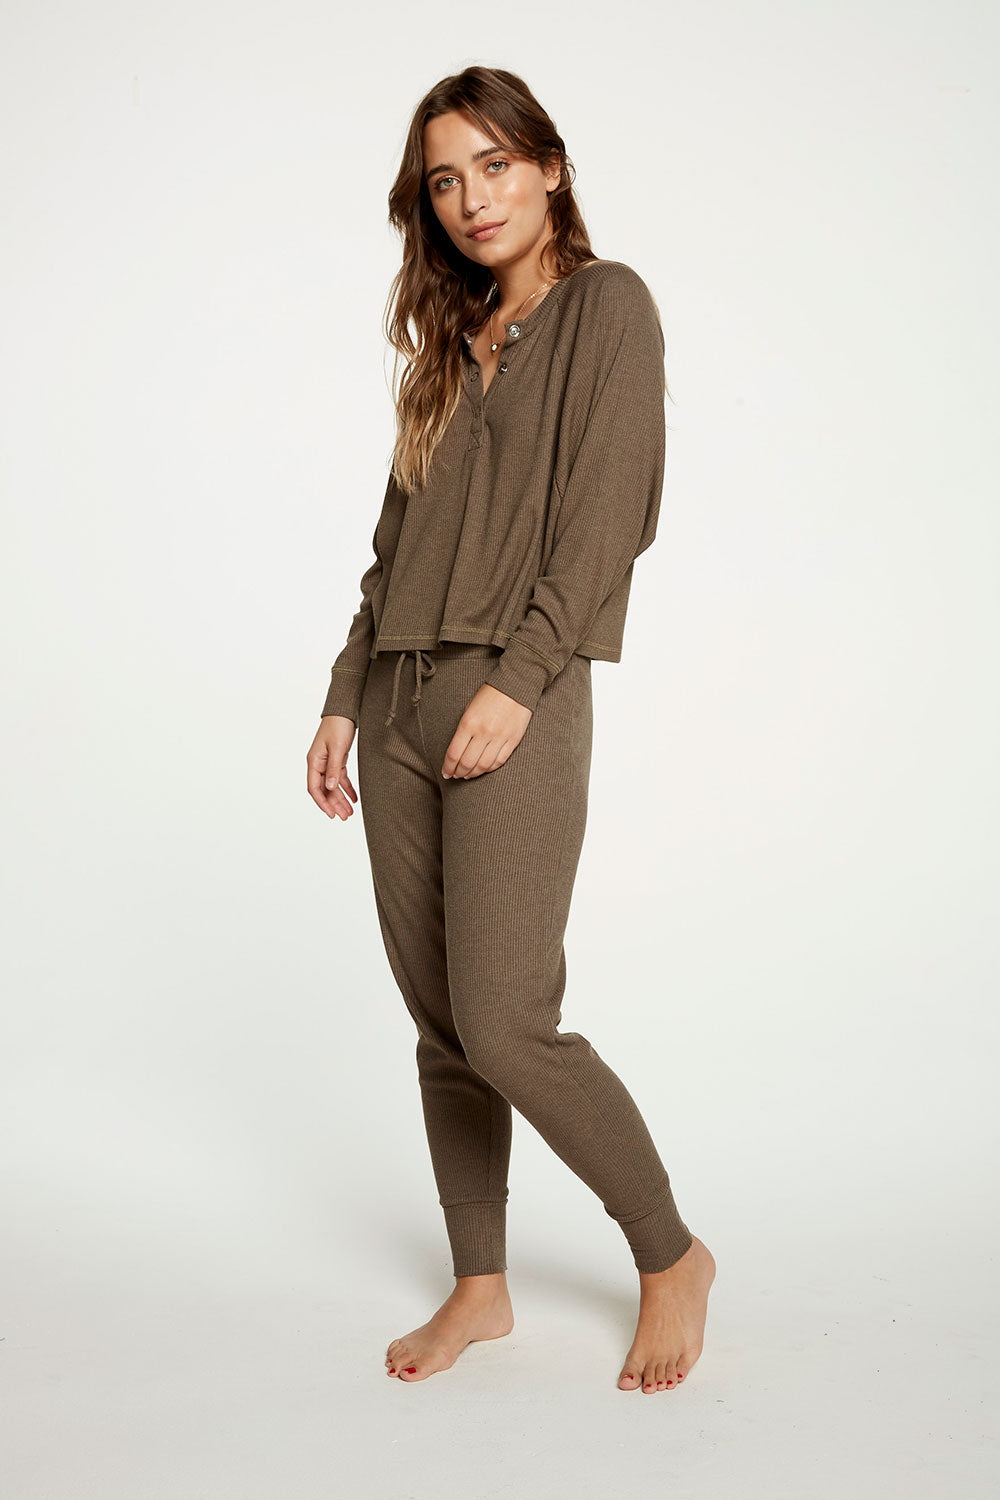 Cozy Rib Slouchy Lounge Pant WOMENS chaserbrand4.myshopify.com